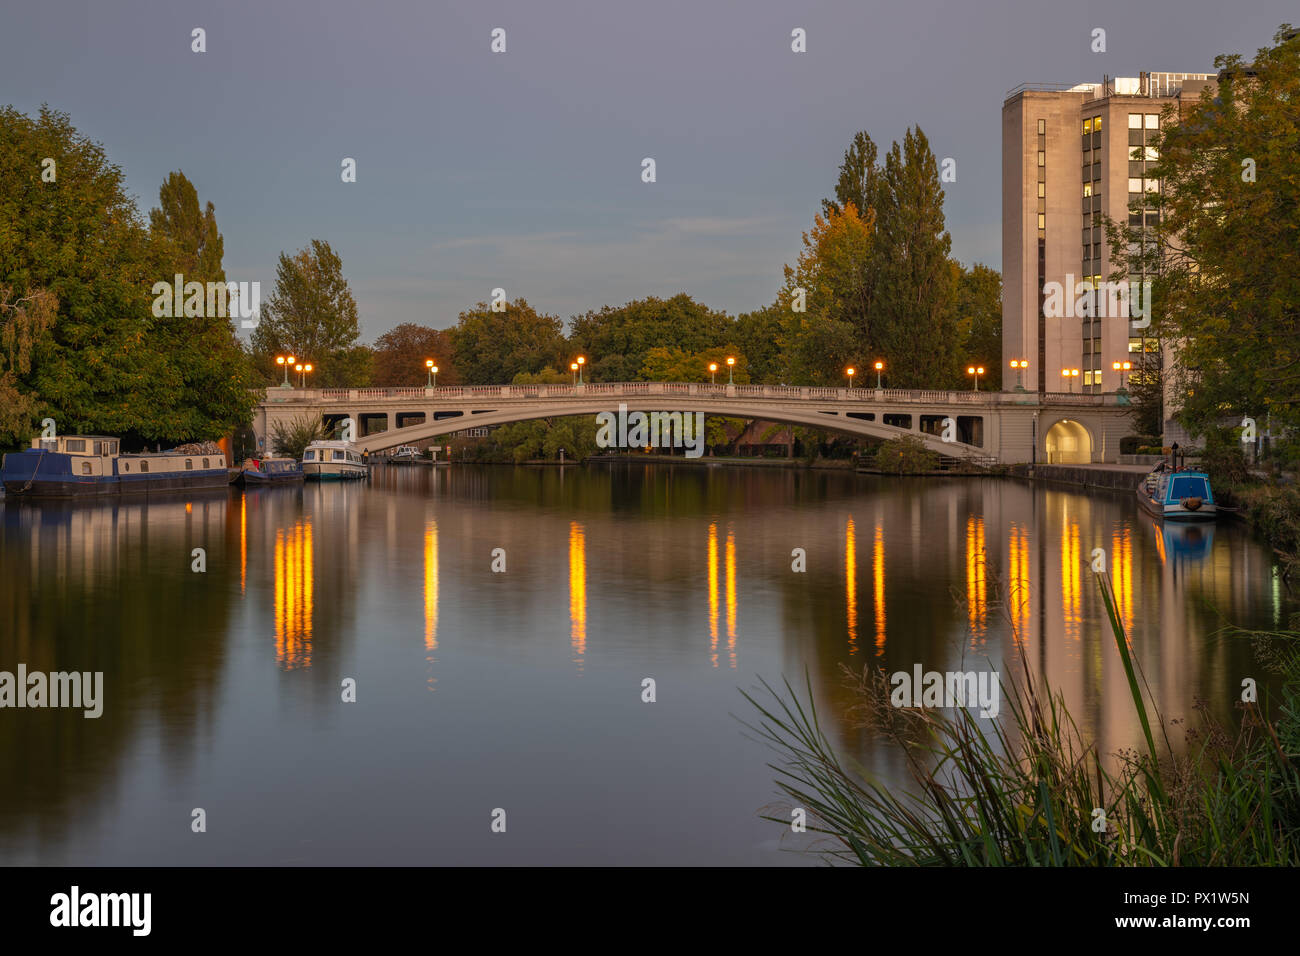 Reading Bridge over the River Thames, Reading Berkshire United Kingdom. - Stock Image